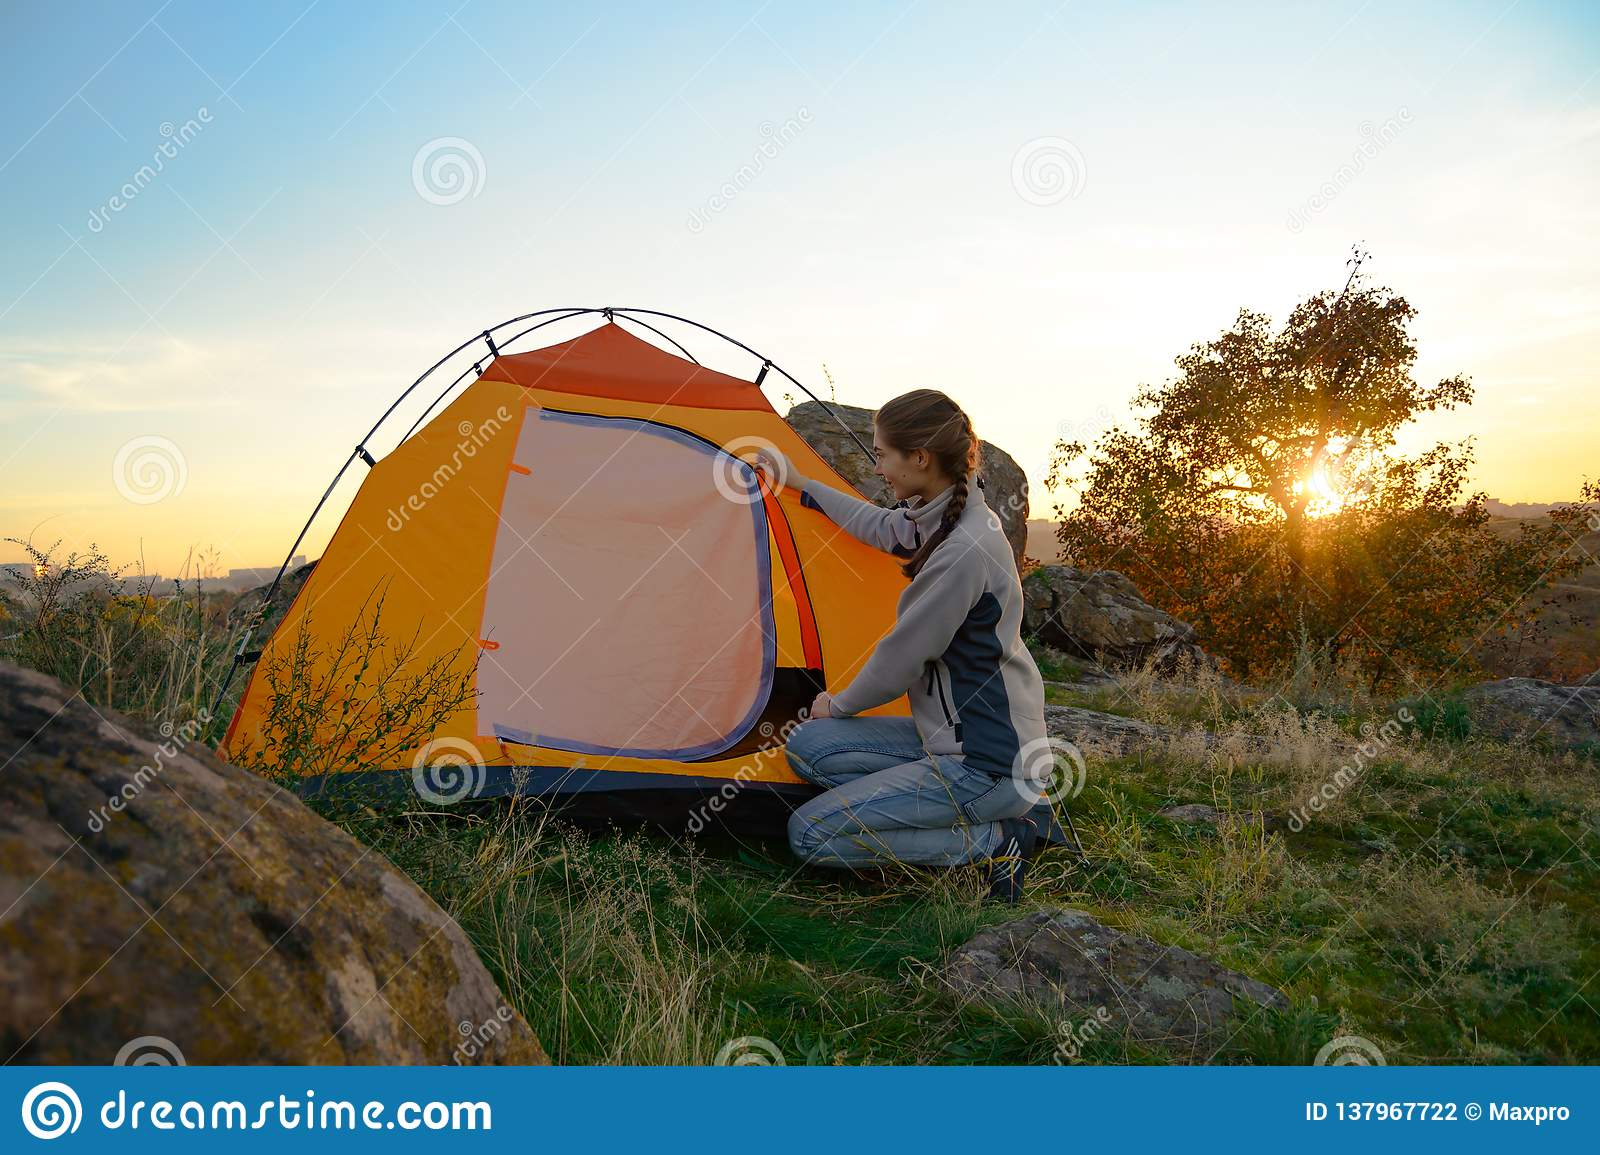 Young Woman Assembling the Tent at Sunset in the Mountains. Adventure and Travel.